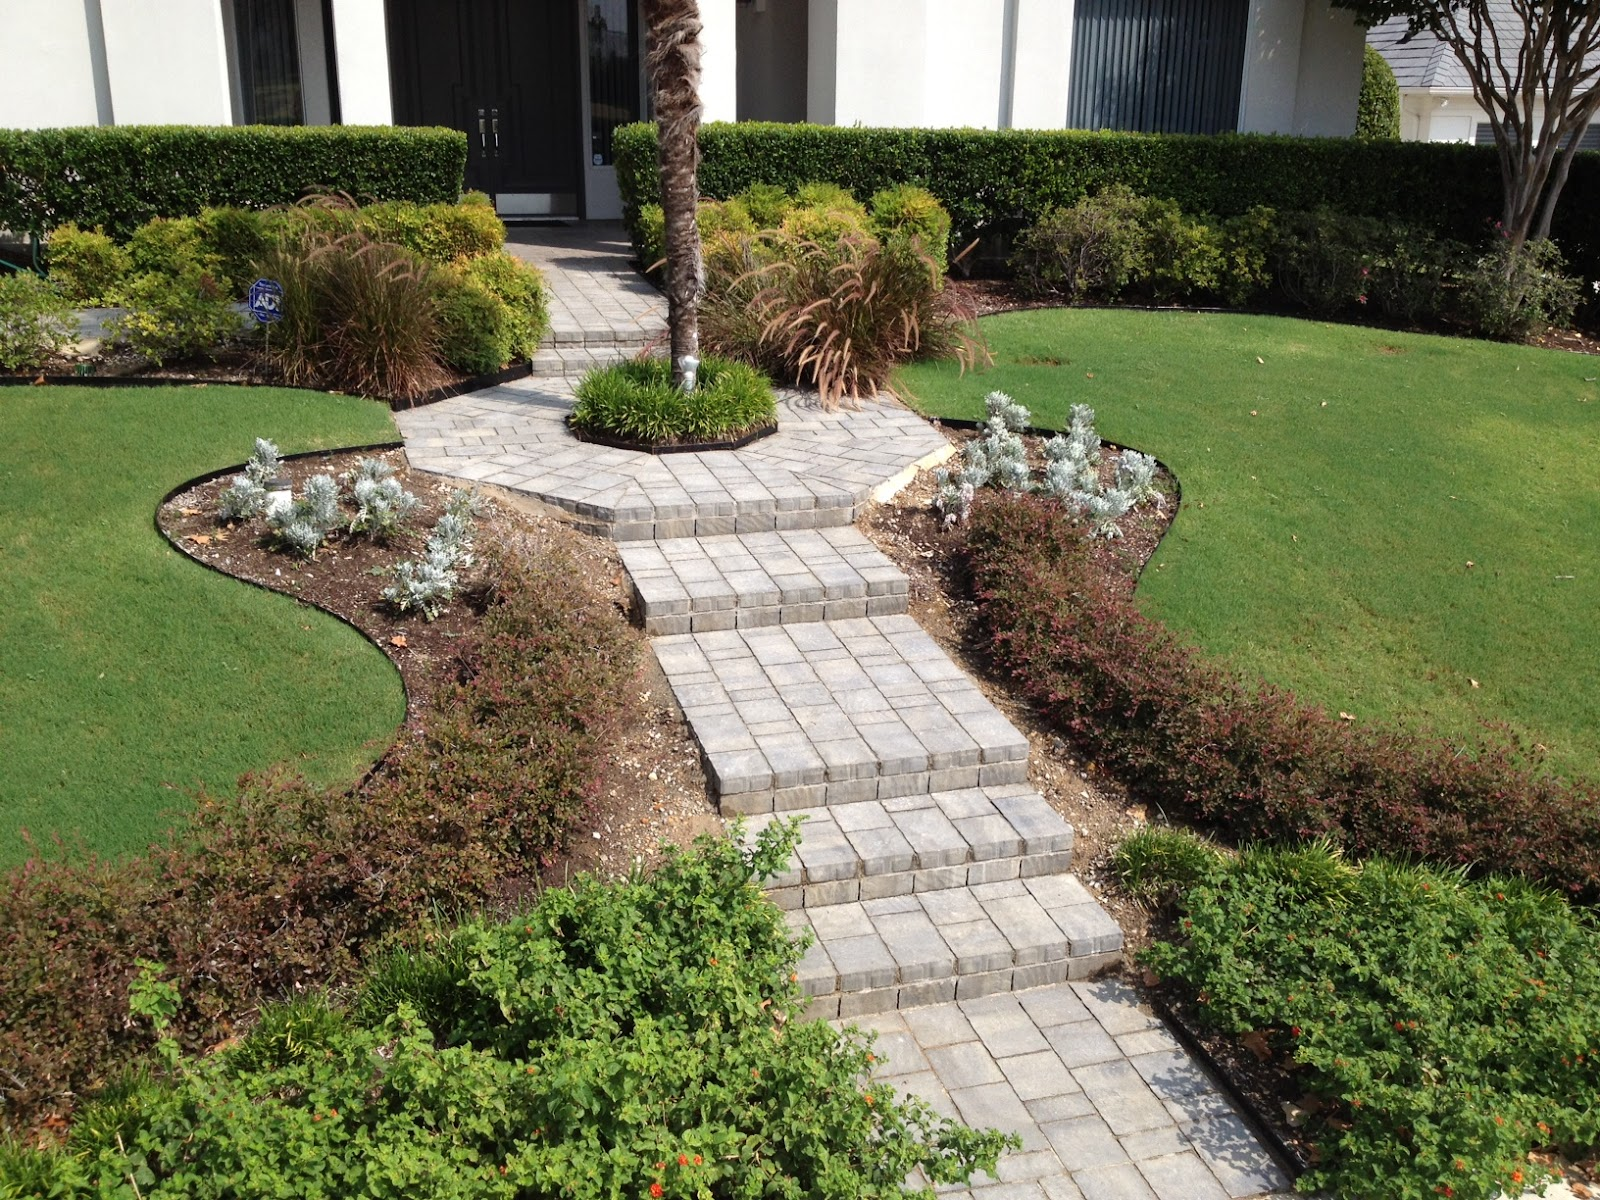 How Much Does It Cost To Build A Custom Walkway?